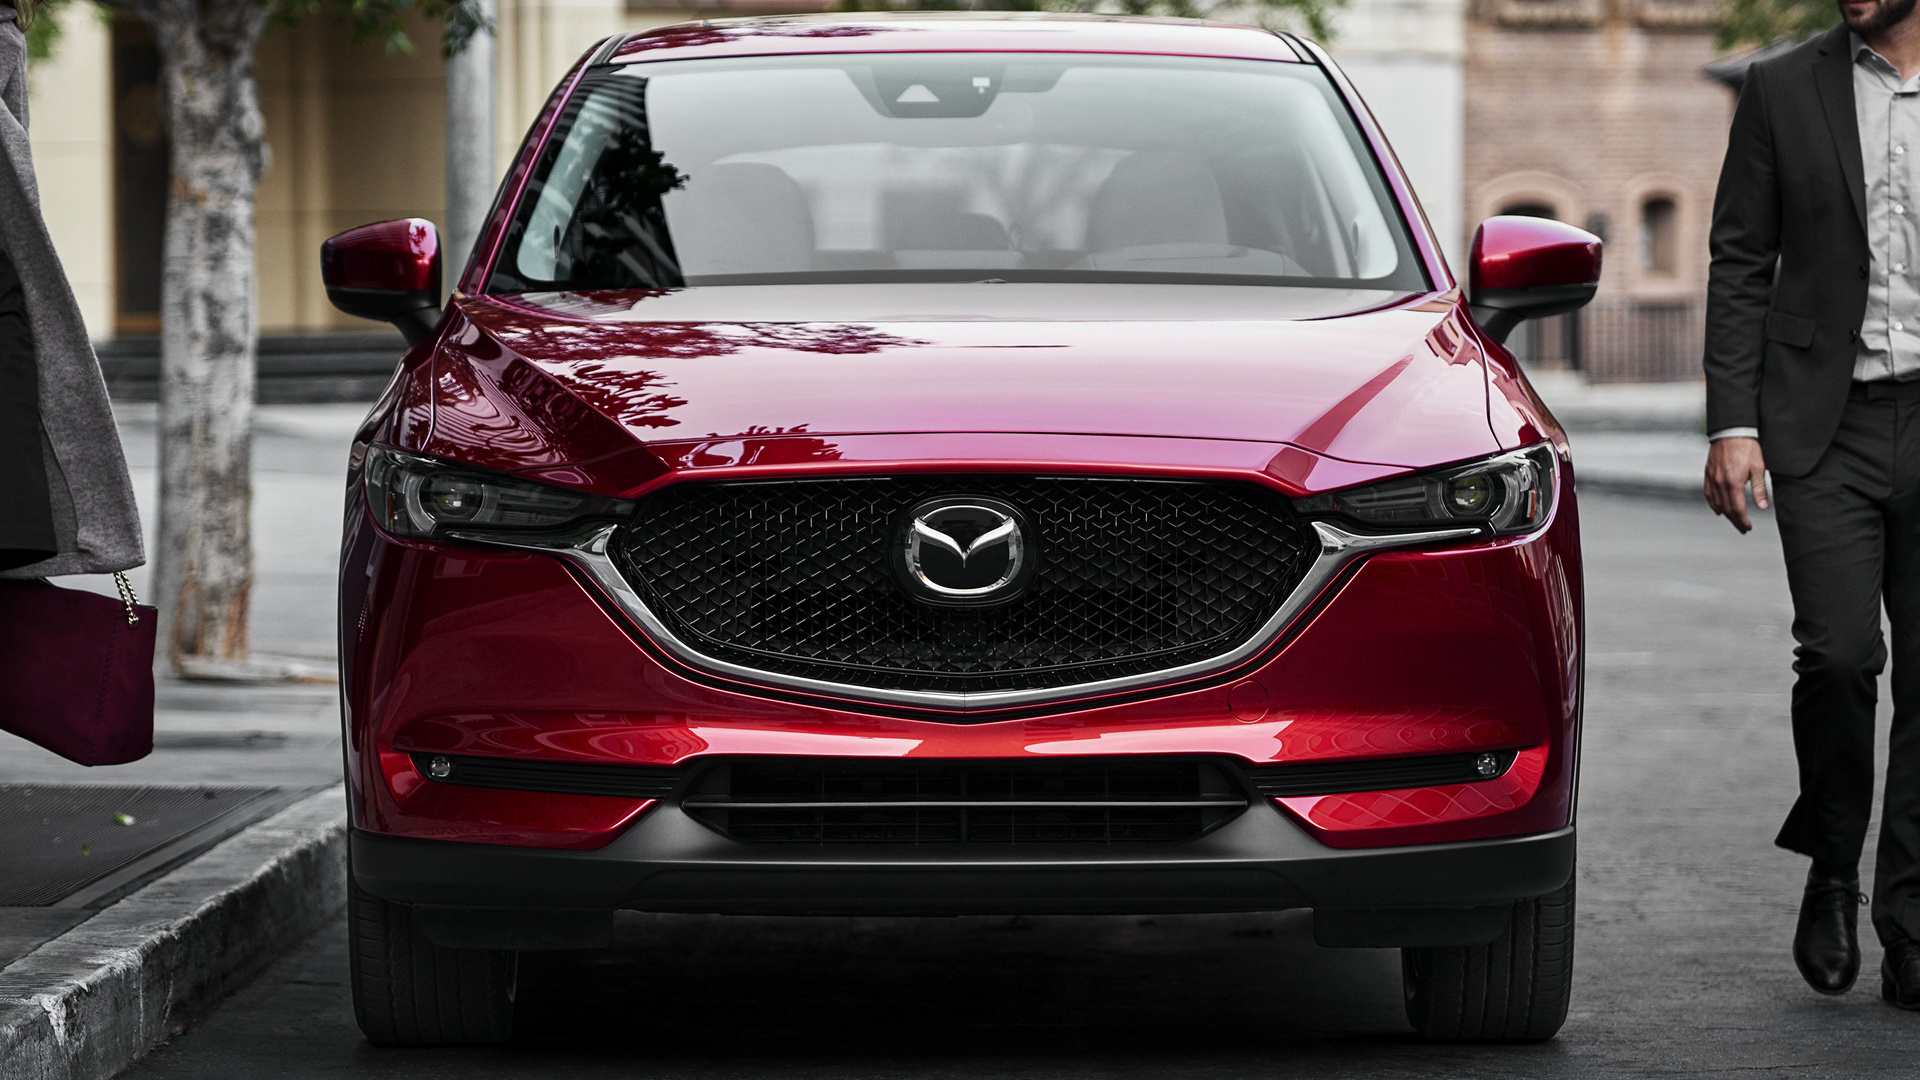 1920x1080 - Mazda CX-5 Wallpapers 22